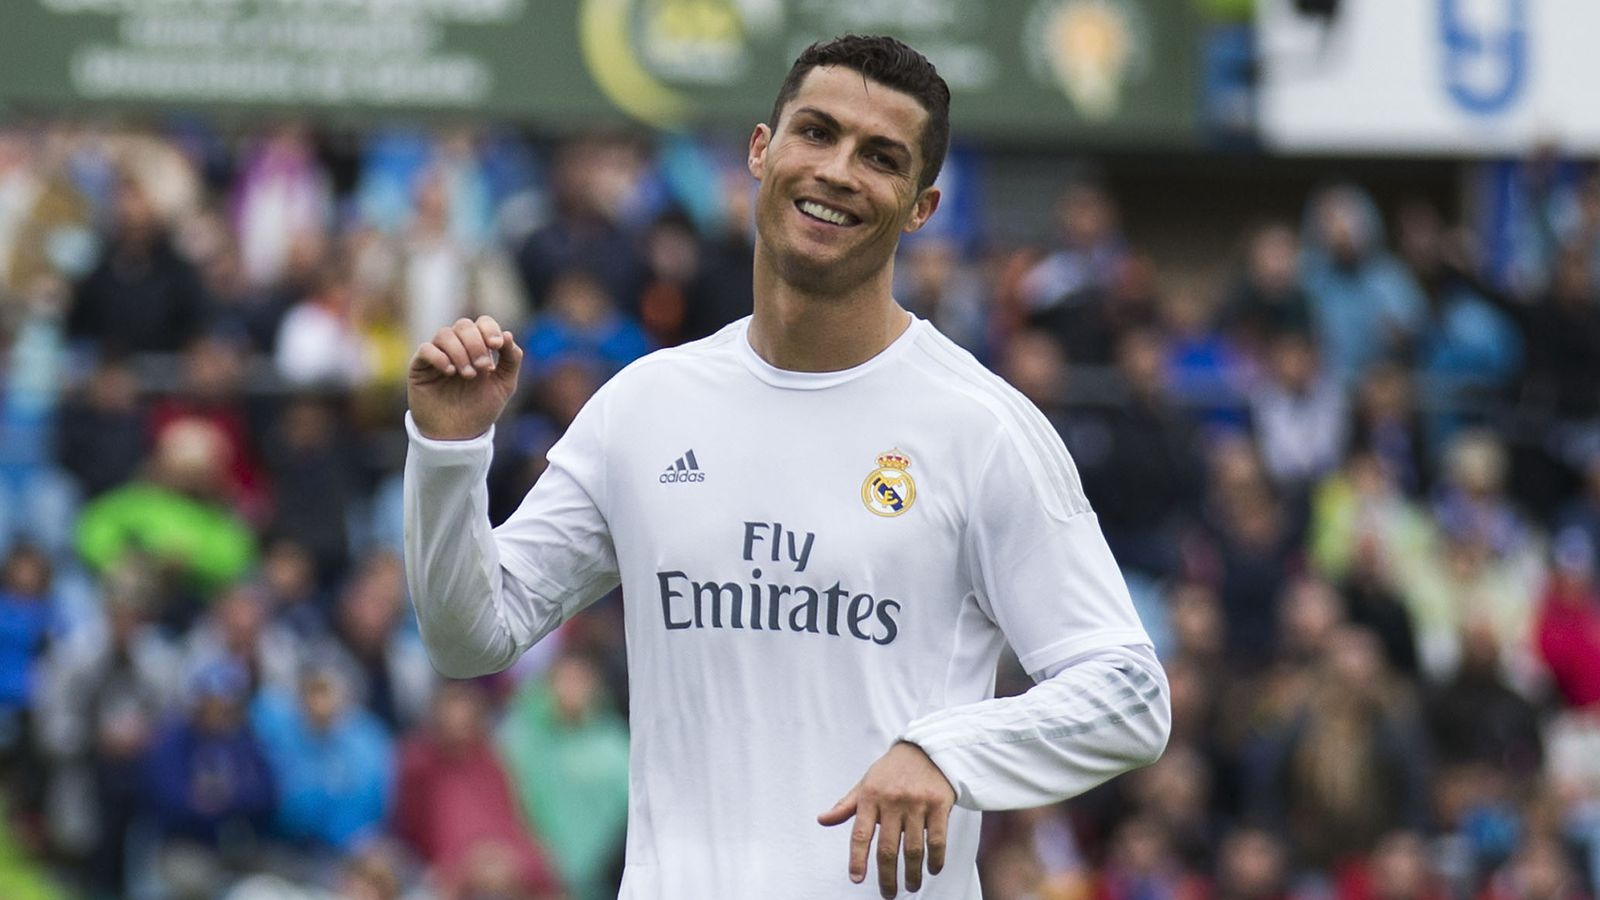 Villarreal - Real Madrid Live Score, video stream and H2H results